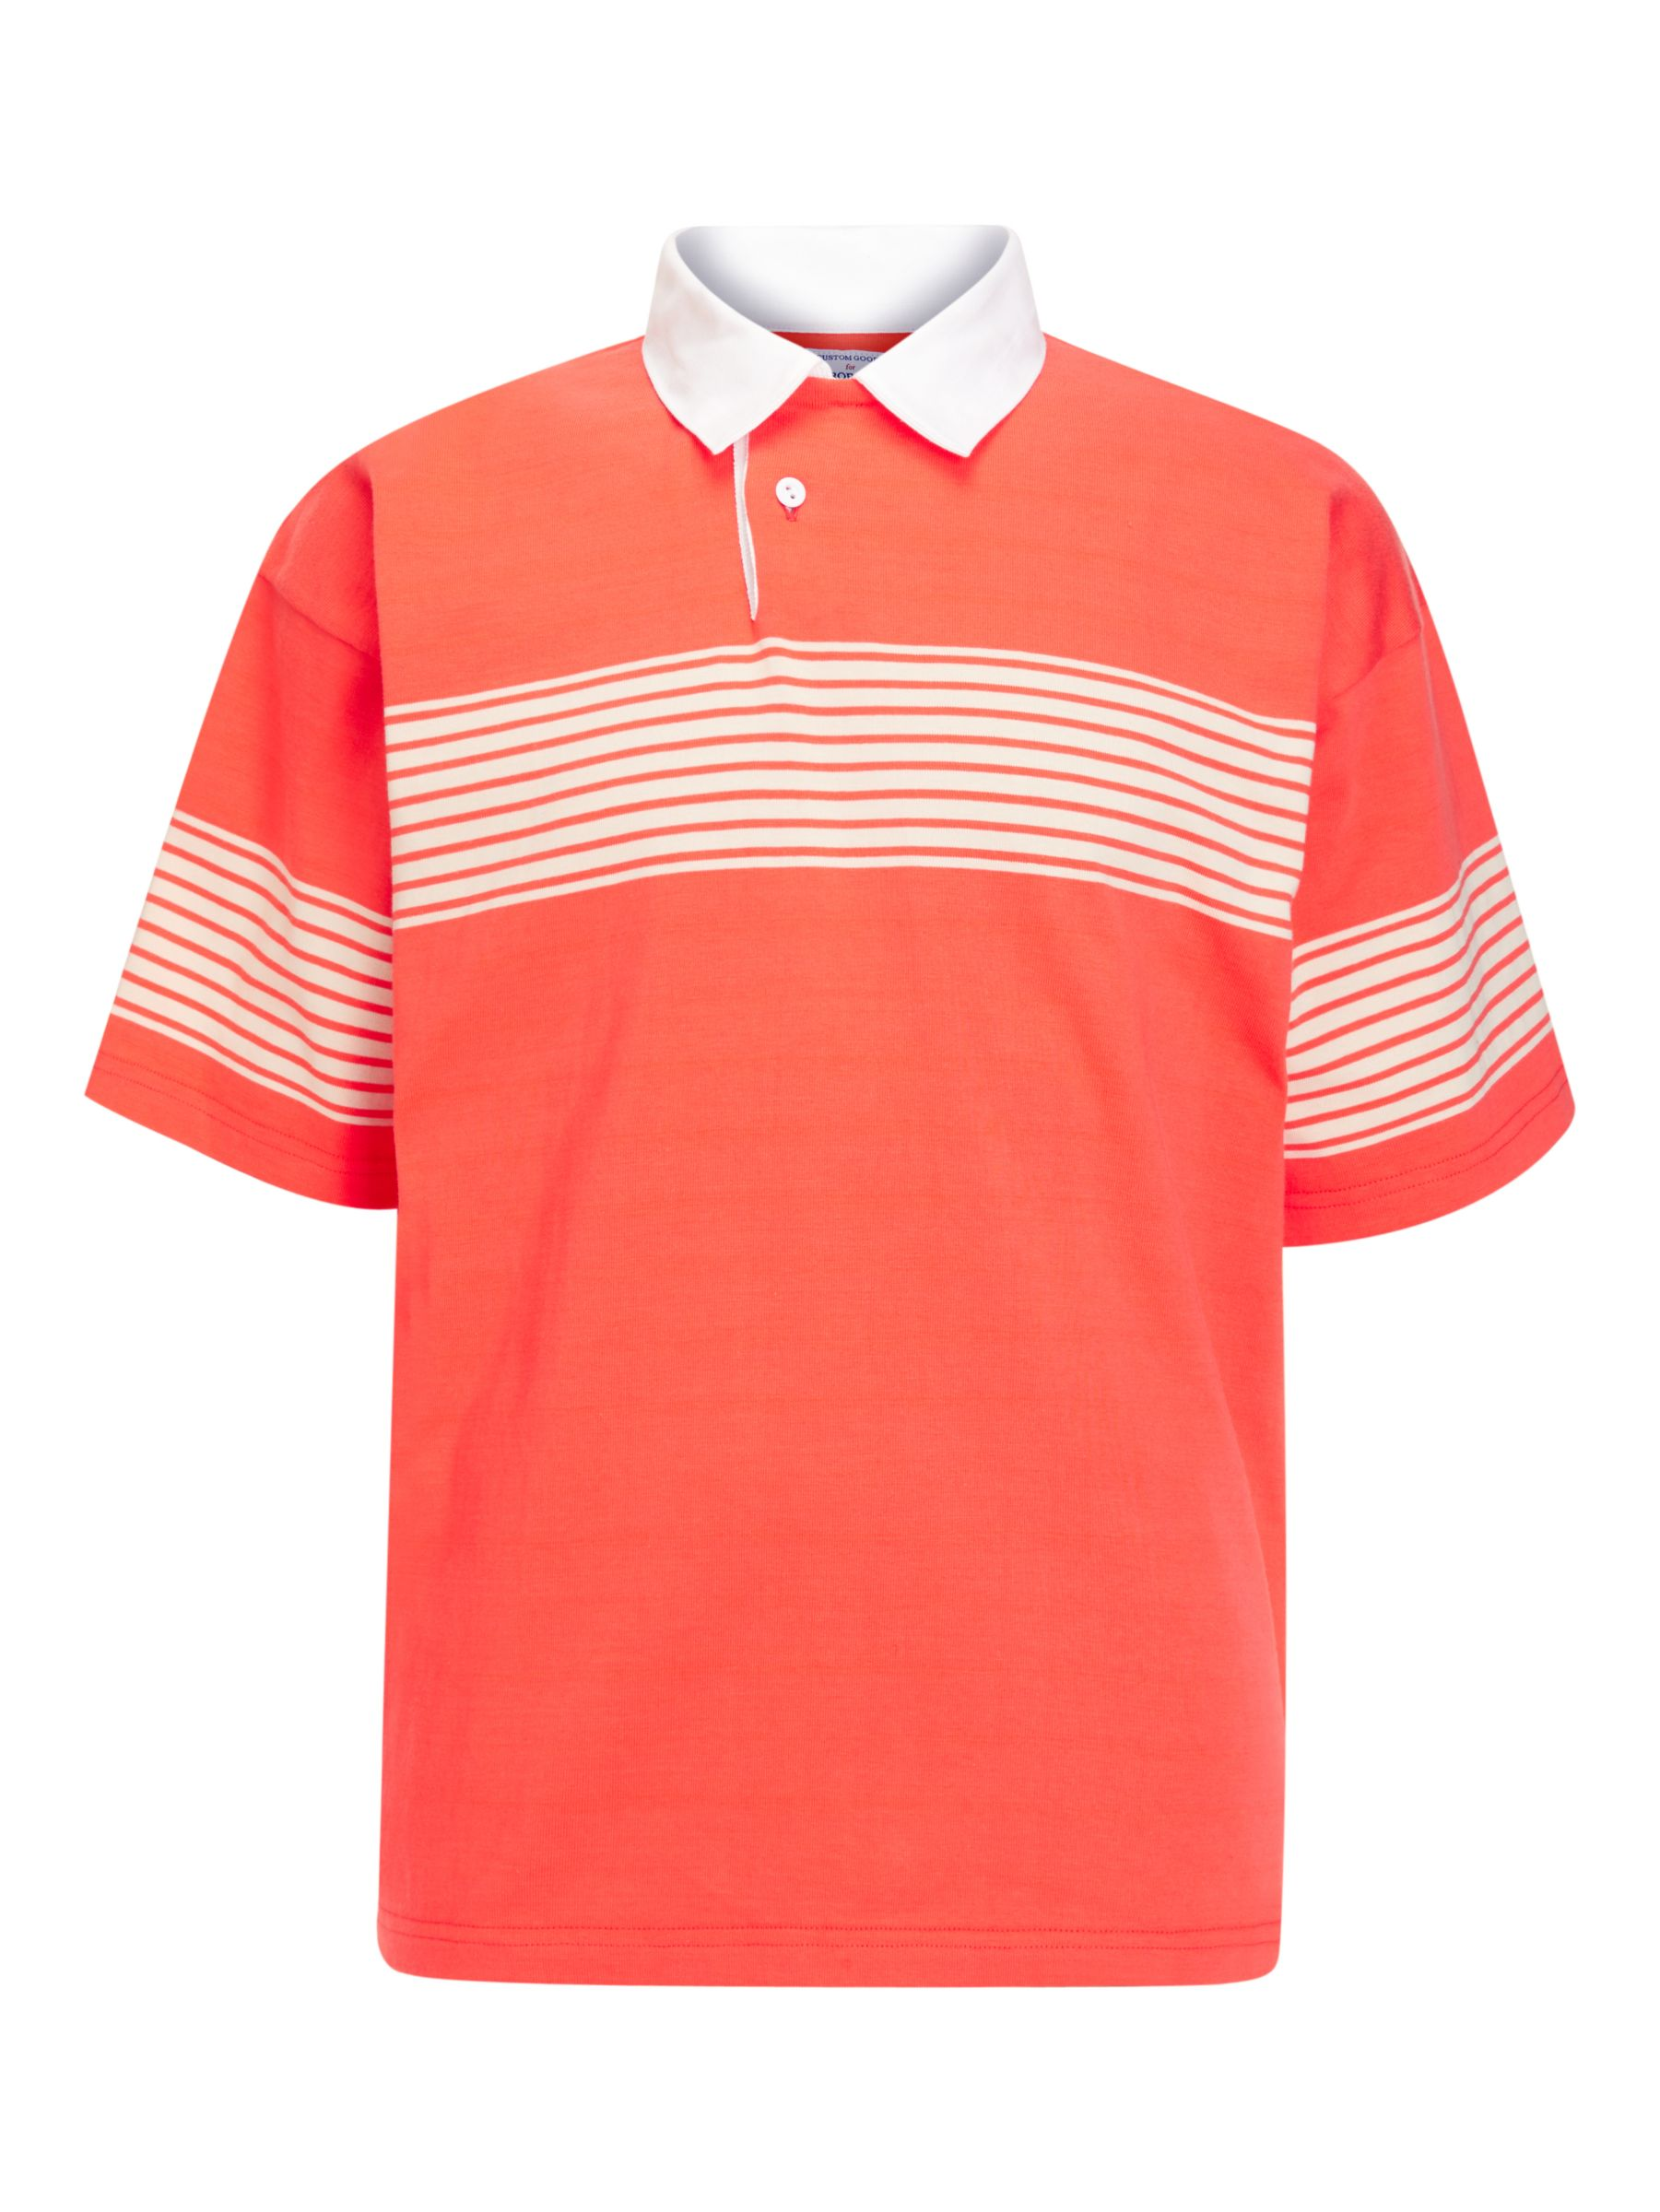 Buy Garbstore Drop Out Sports Cotton Stripe Rugby Shirt, Orange/Natural, S Online at johnlewis.com